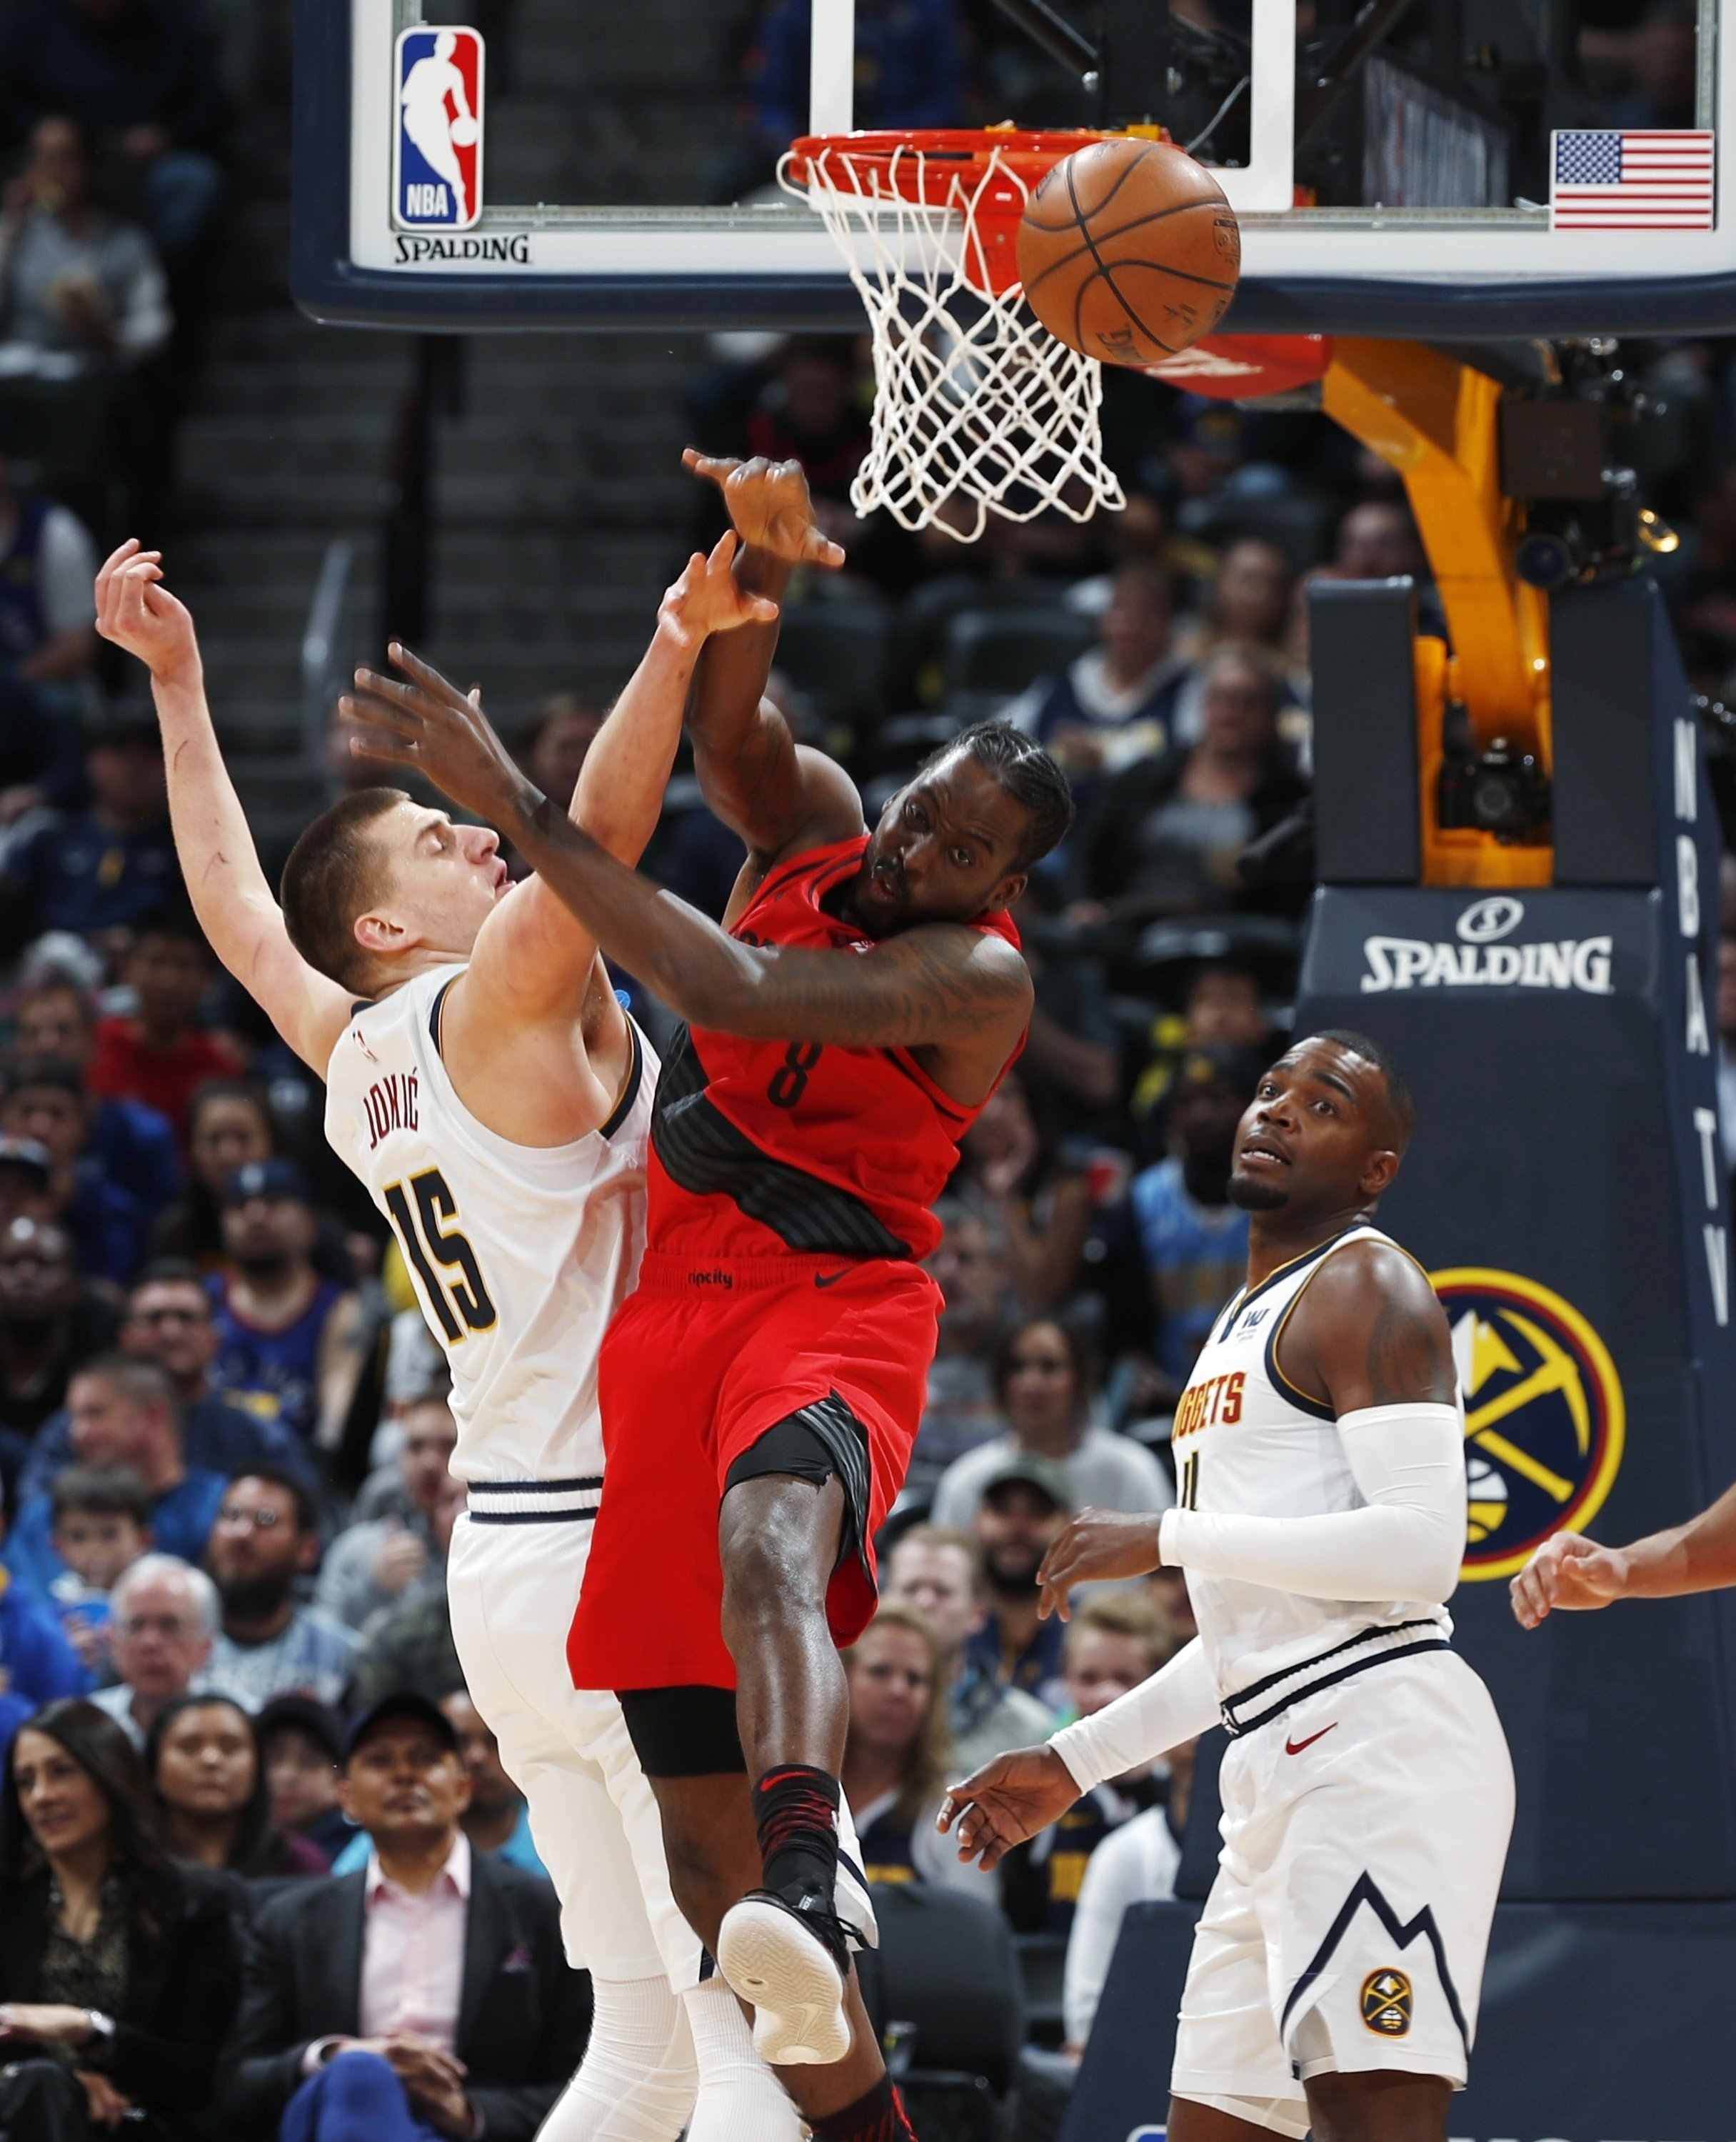 Denver School Shooting May 2019: McCollum Leads Blazers Past Cold Nuggets, 97-90